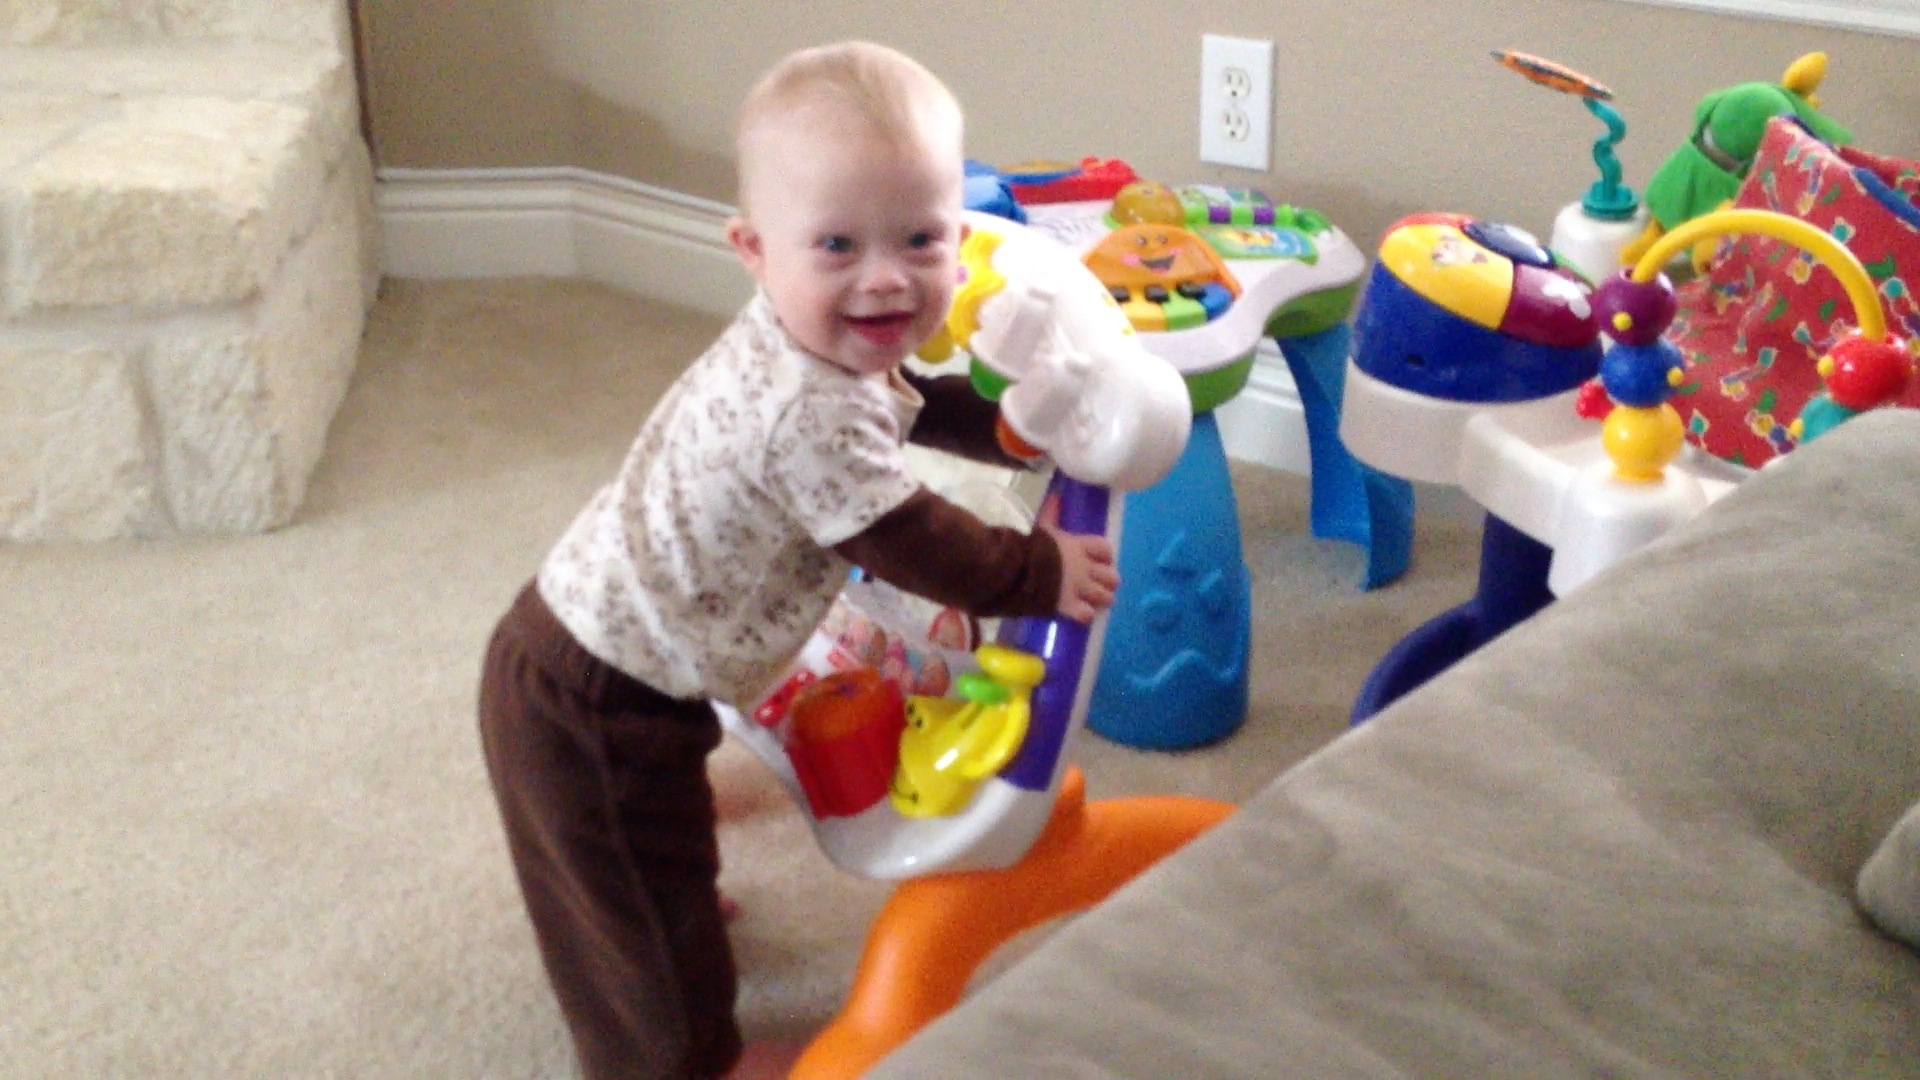 How To Help Your Child With Down Syndrome Learn To Pull Their Self Up